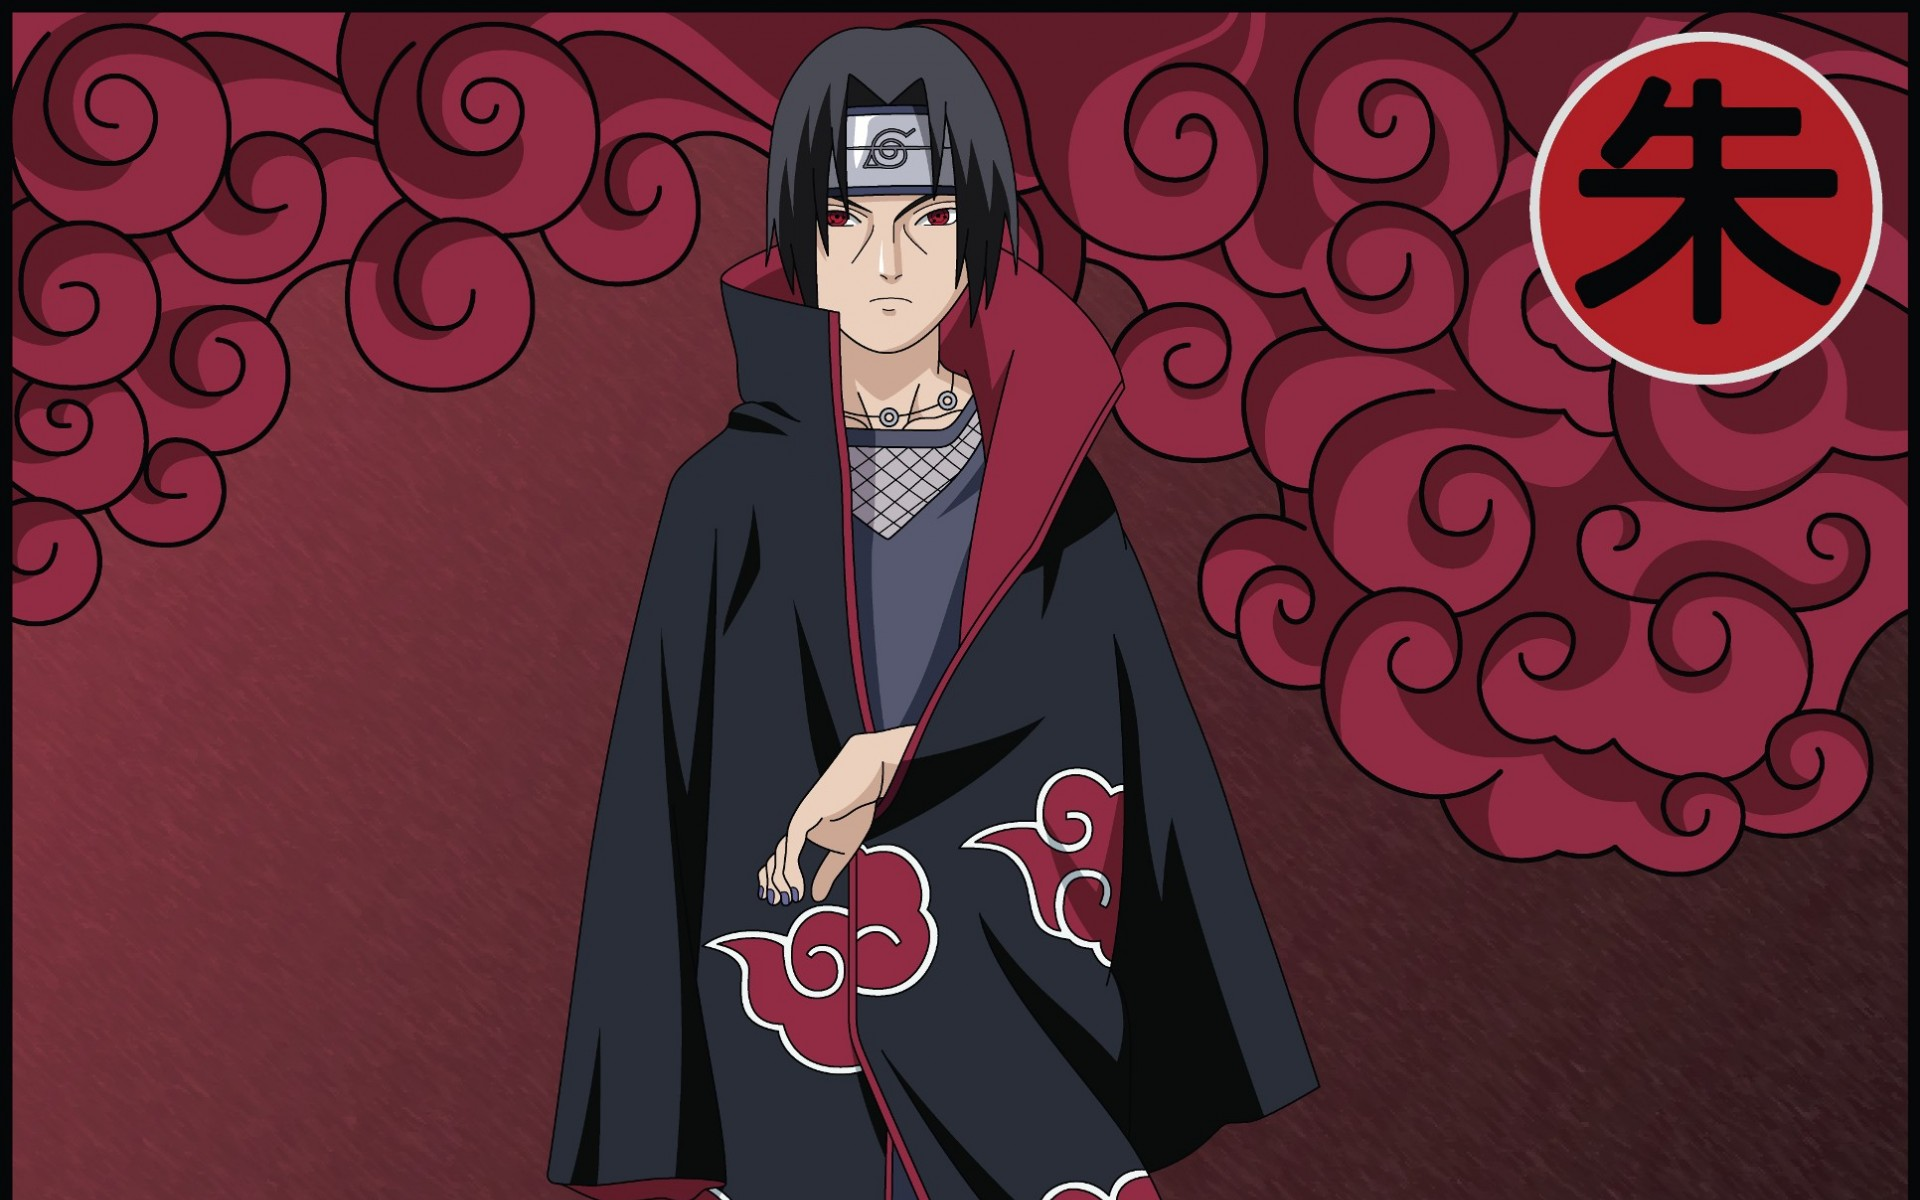 Naruto Vs Pain Wallpaper Hd Itachi Wallpapers Photos And Desktop Backgrounds Up To 8k